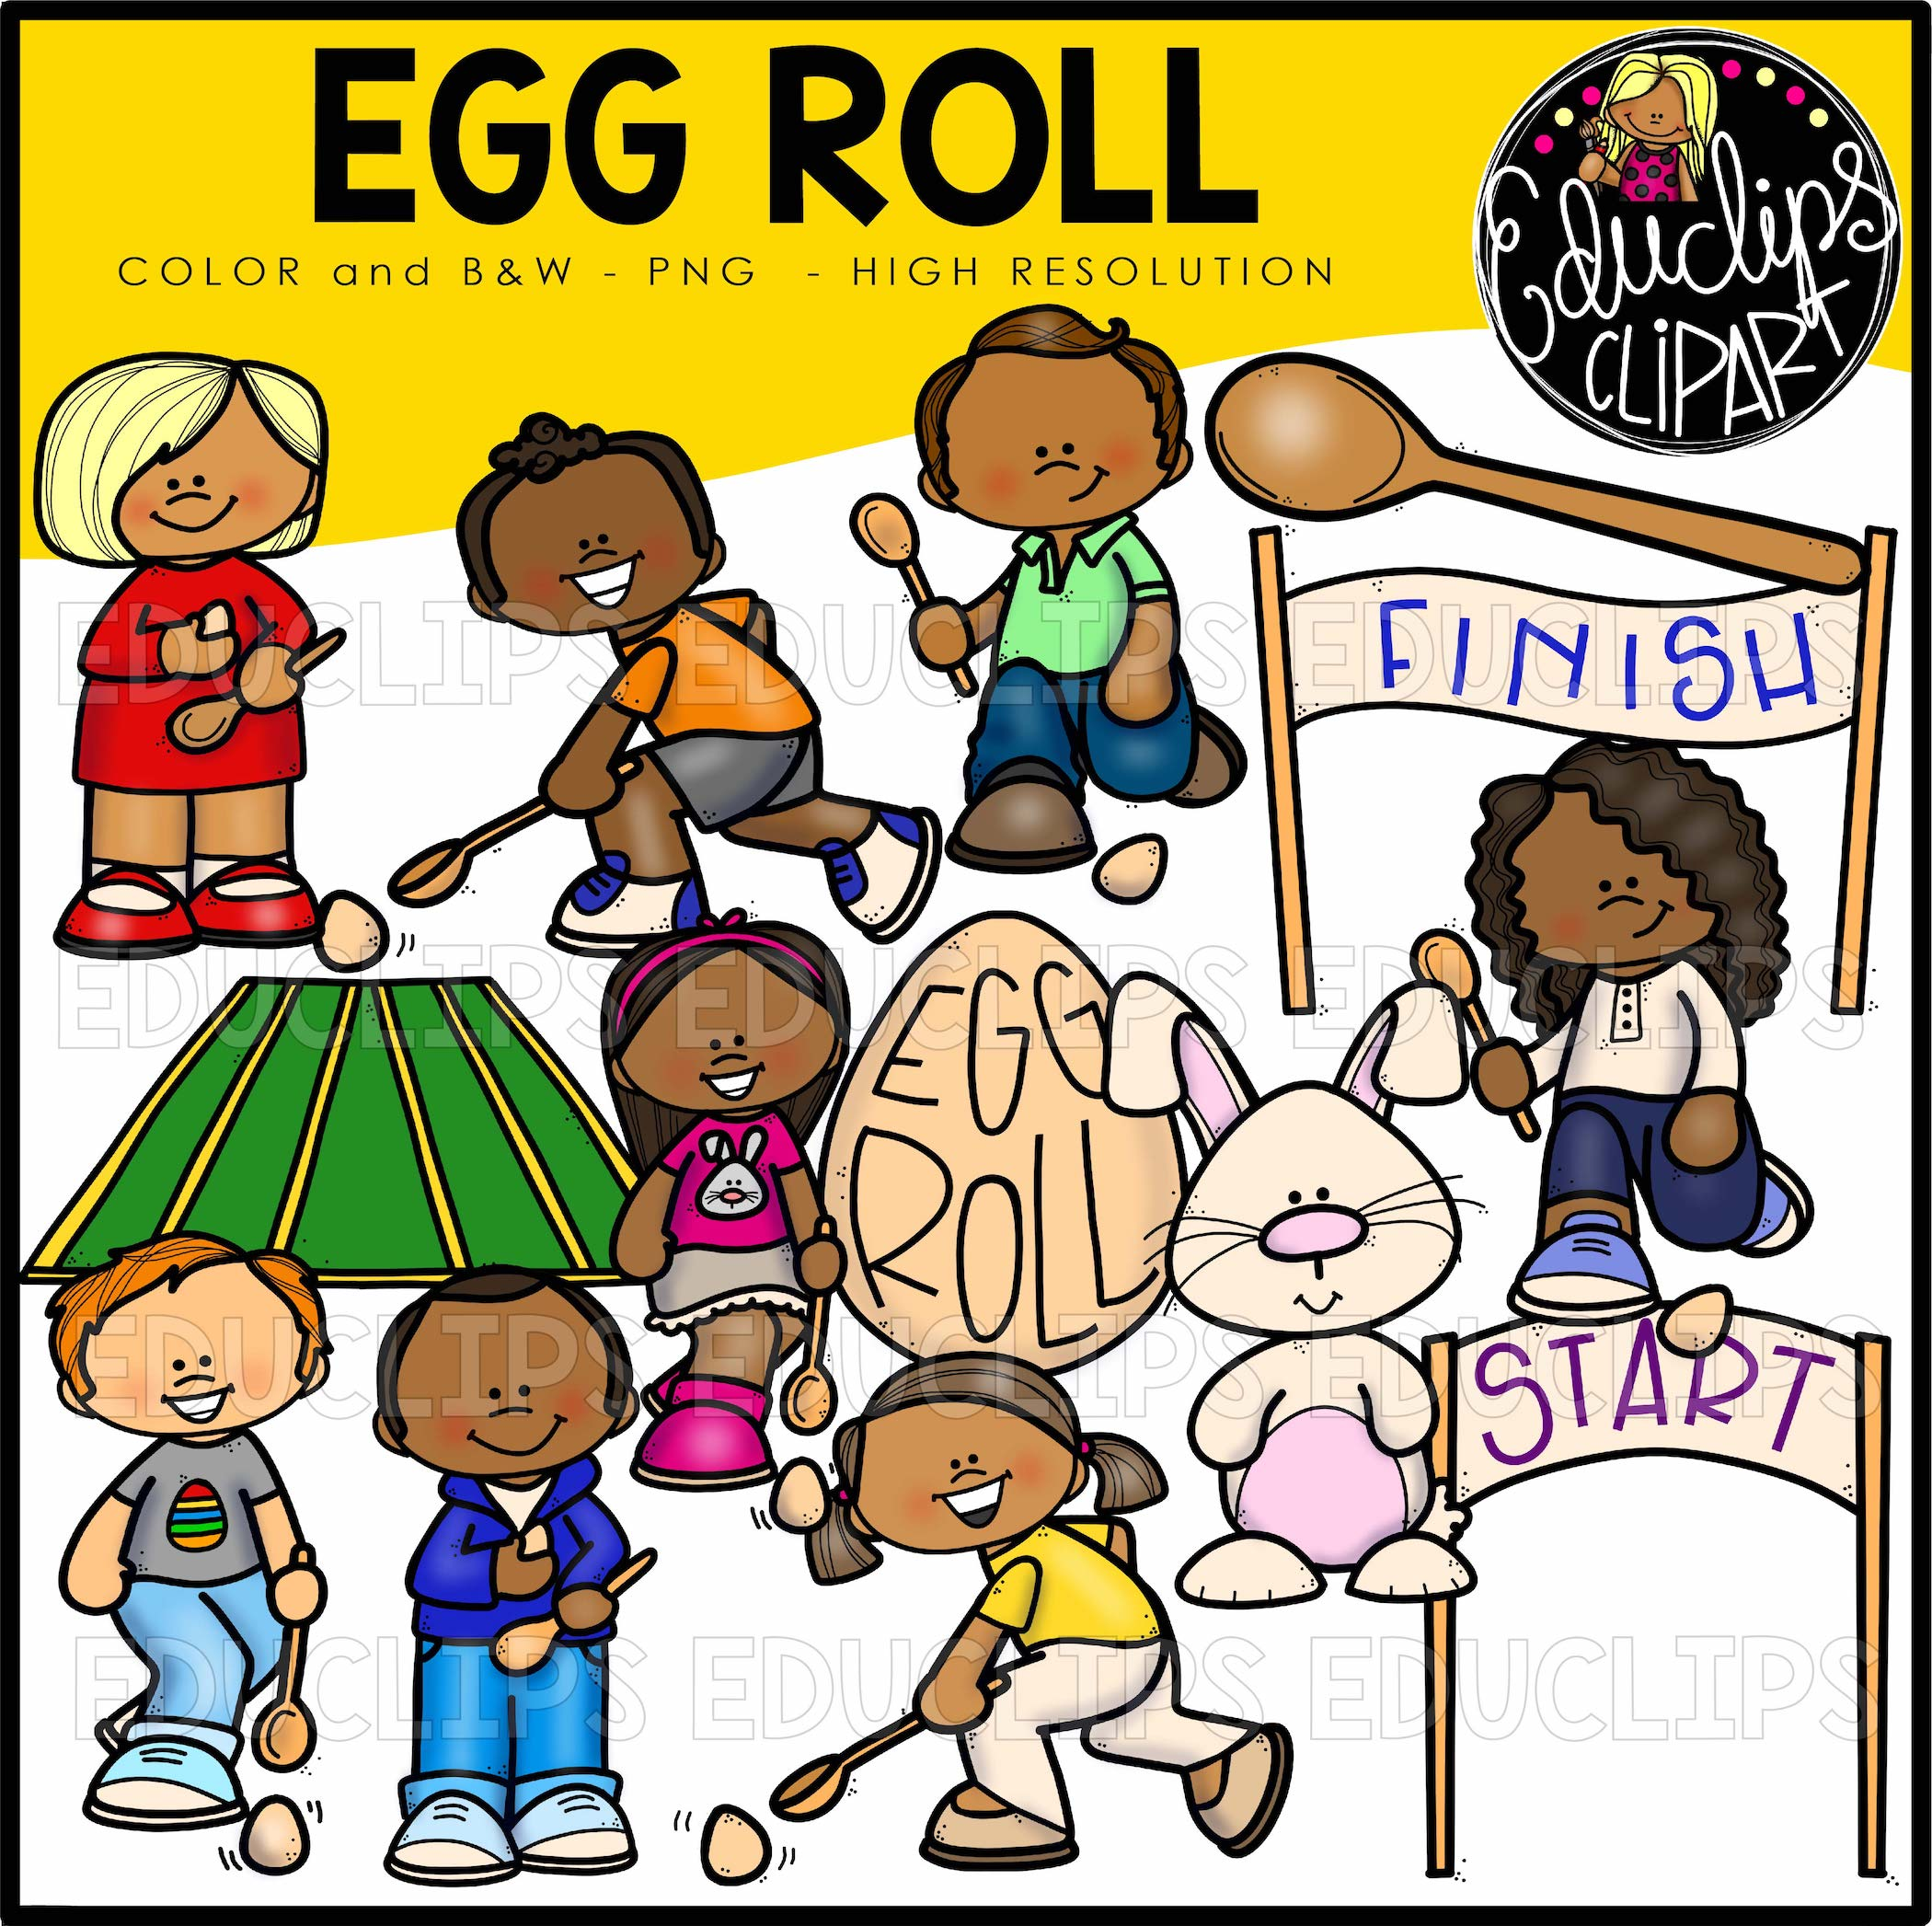 Egg Roll Clipart Big Bundle (Color and B&W).